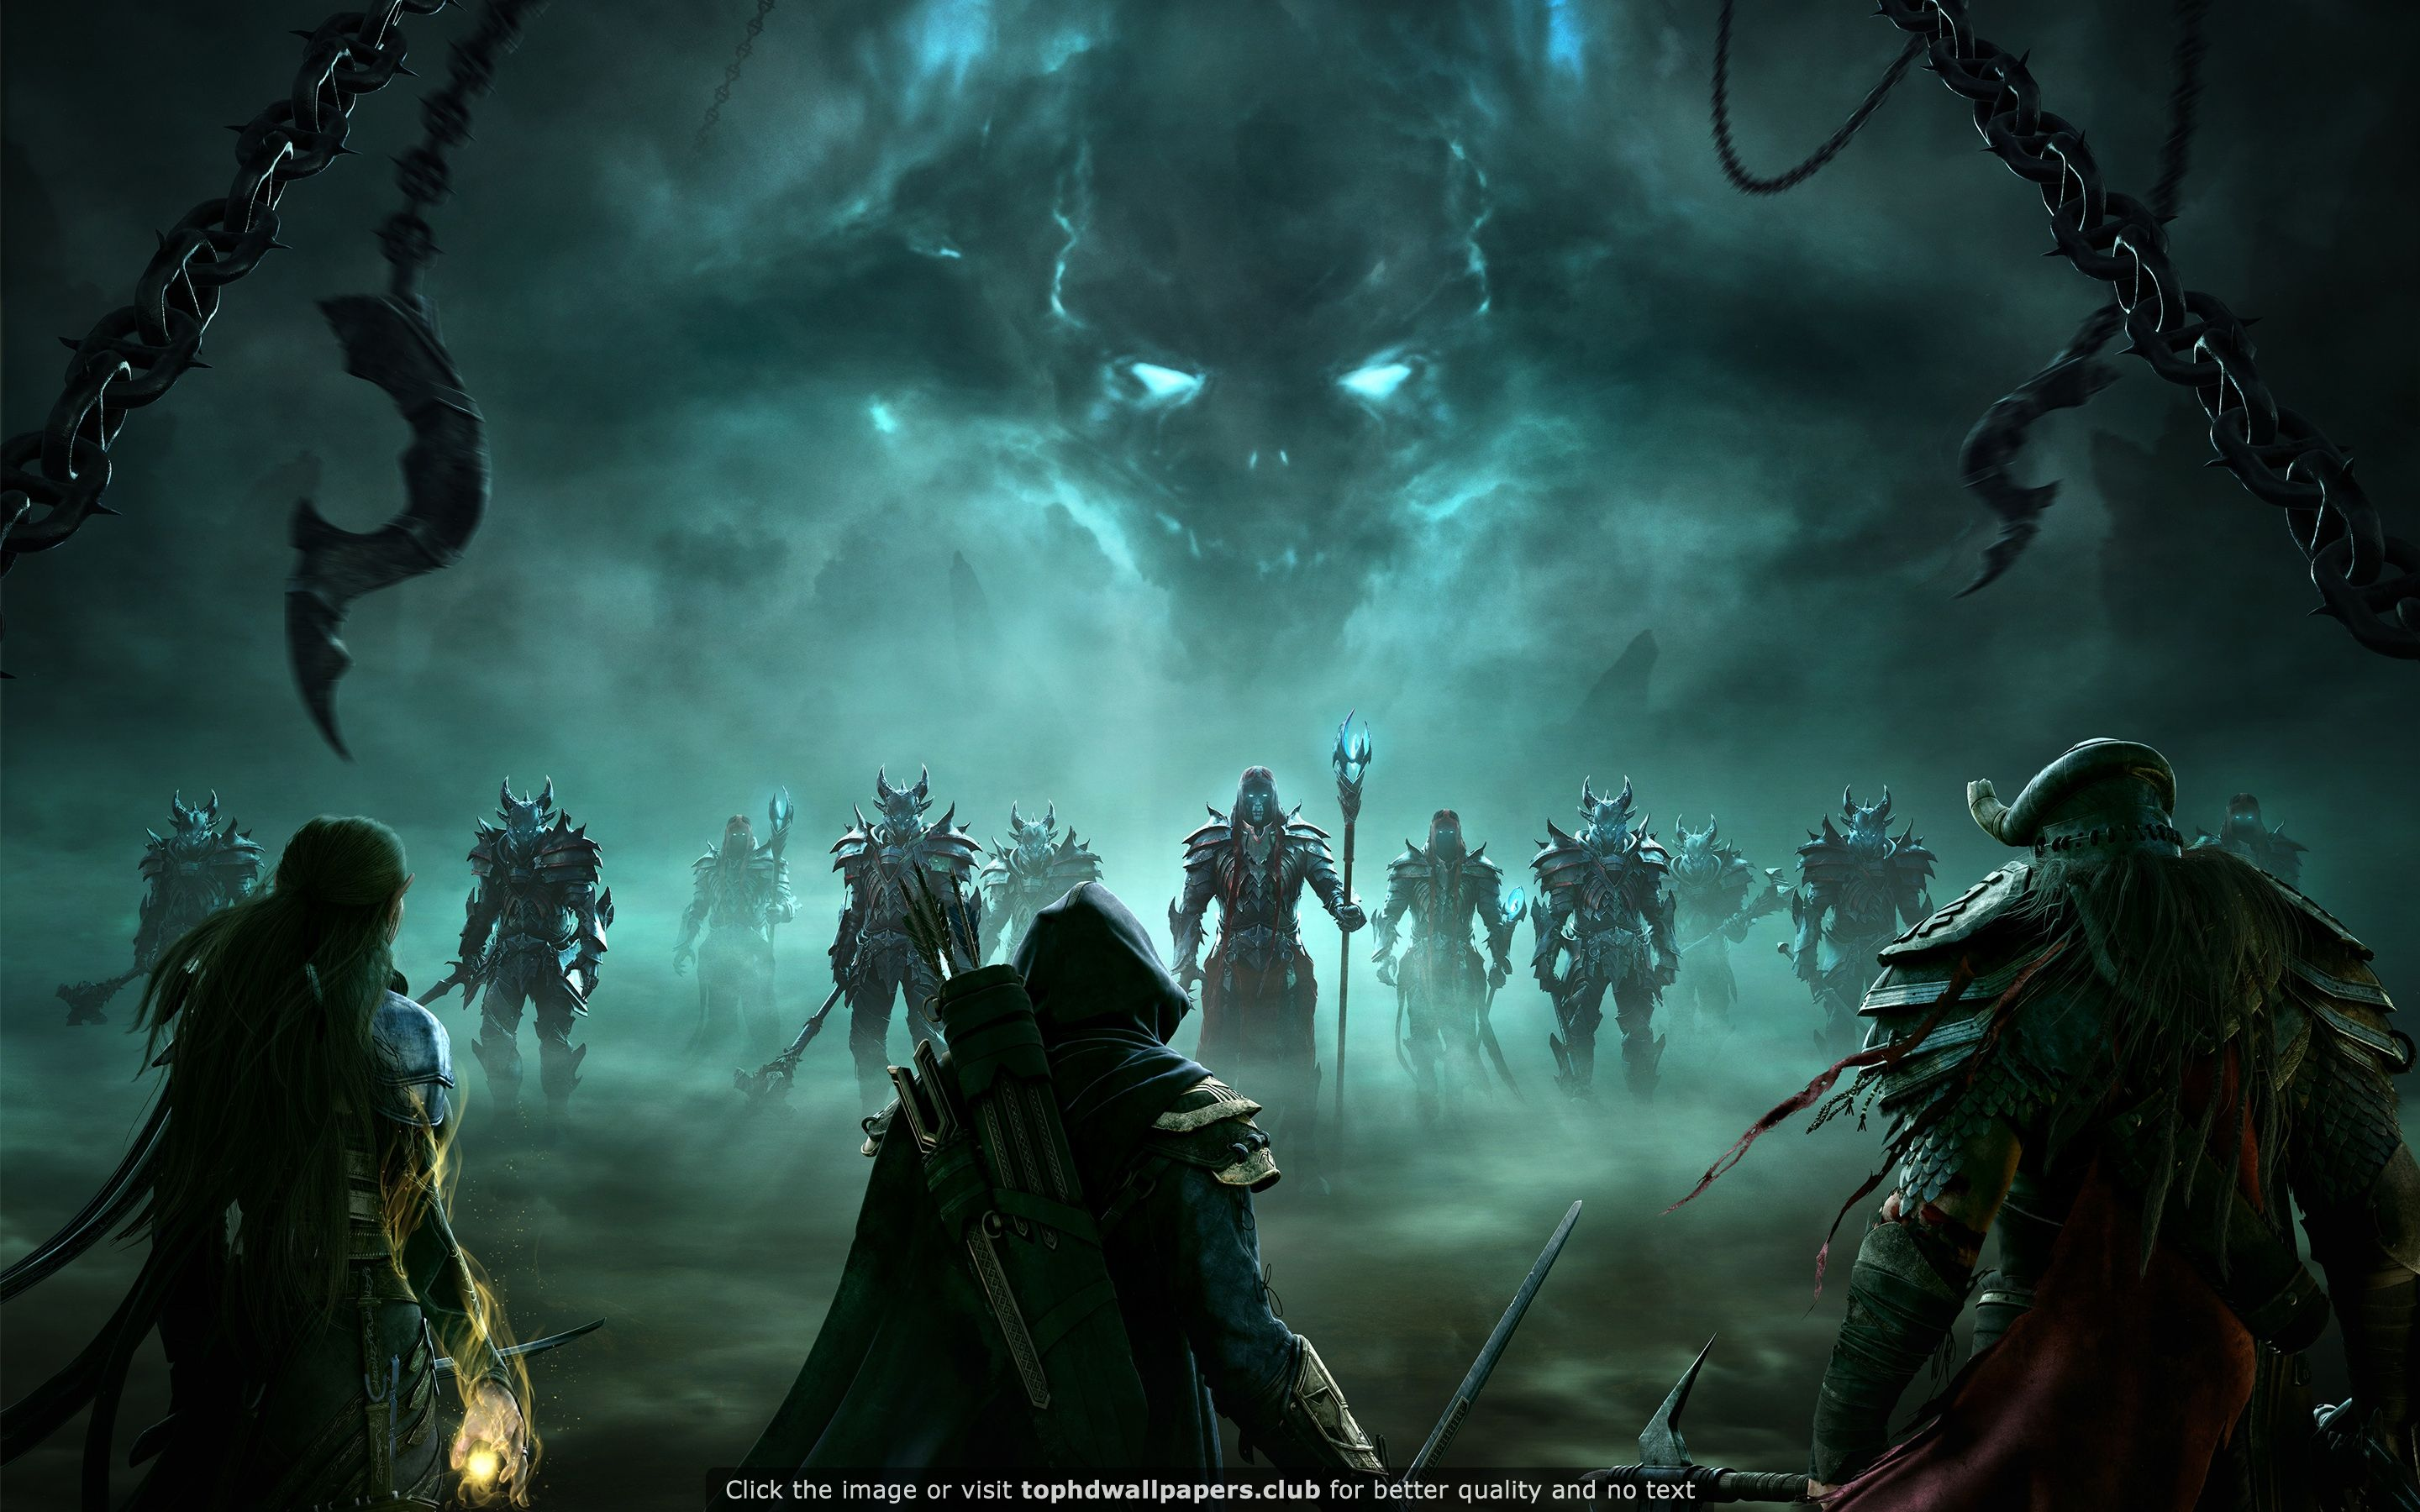 The Elder Scrolls Online Hd Wallpaper For Your Pc Mac Or Mobile